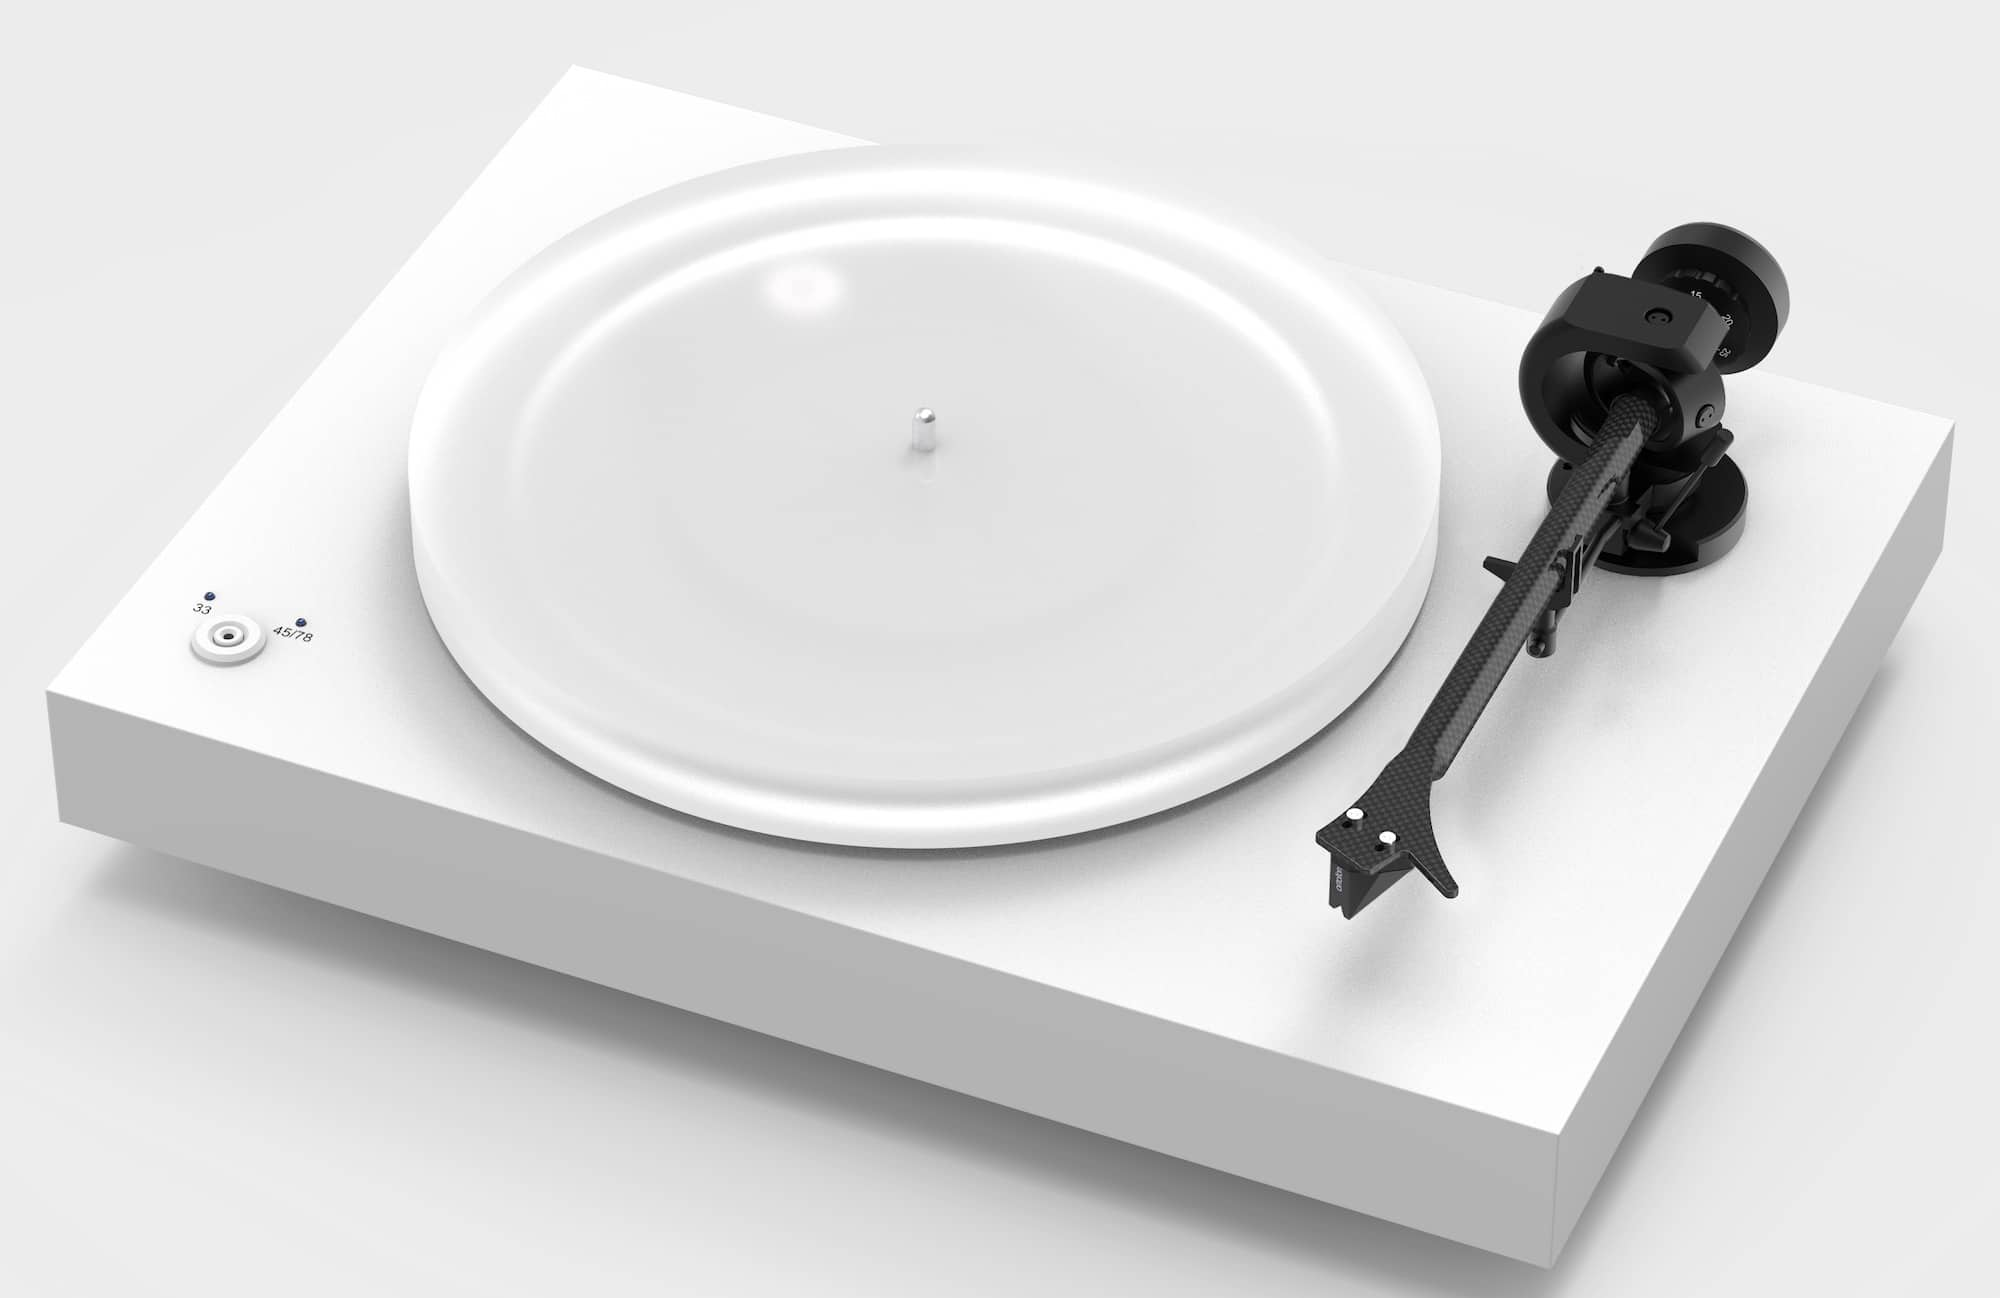 X2 Turntable From Pro Ject With 2M Silver Cartridge The